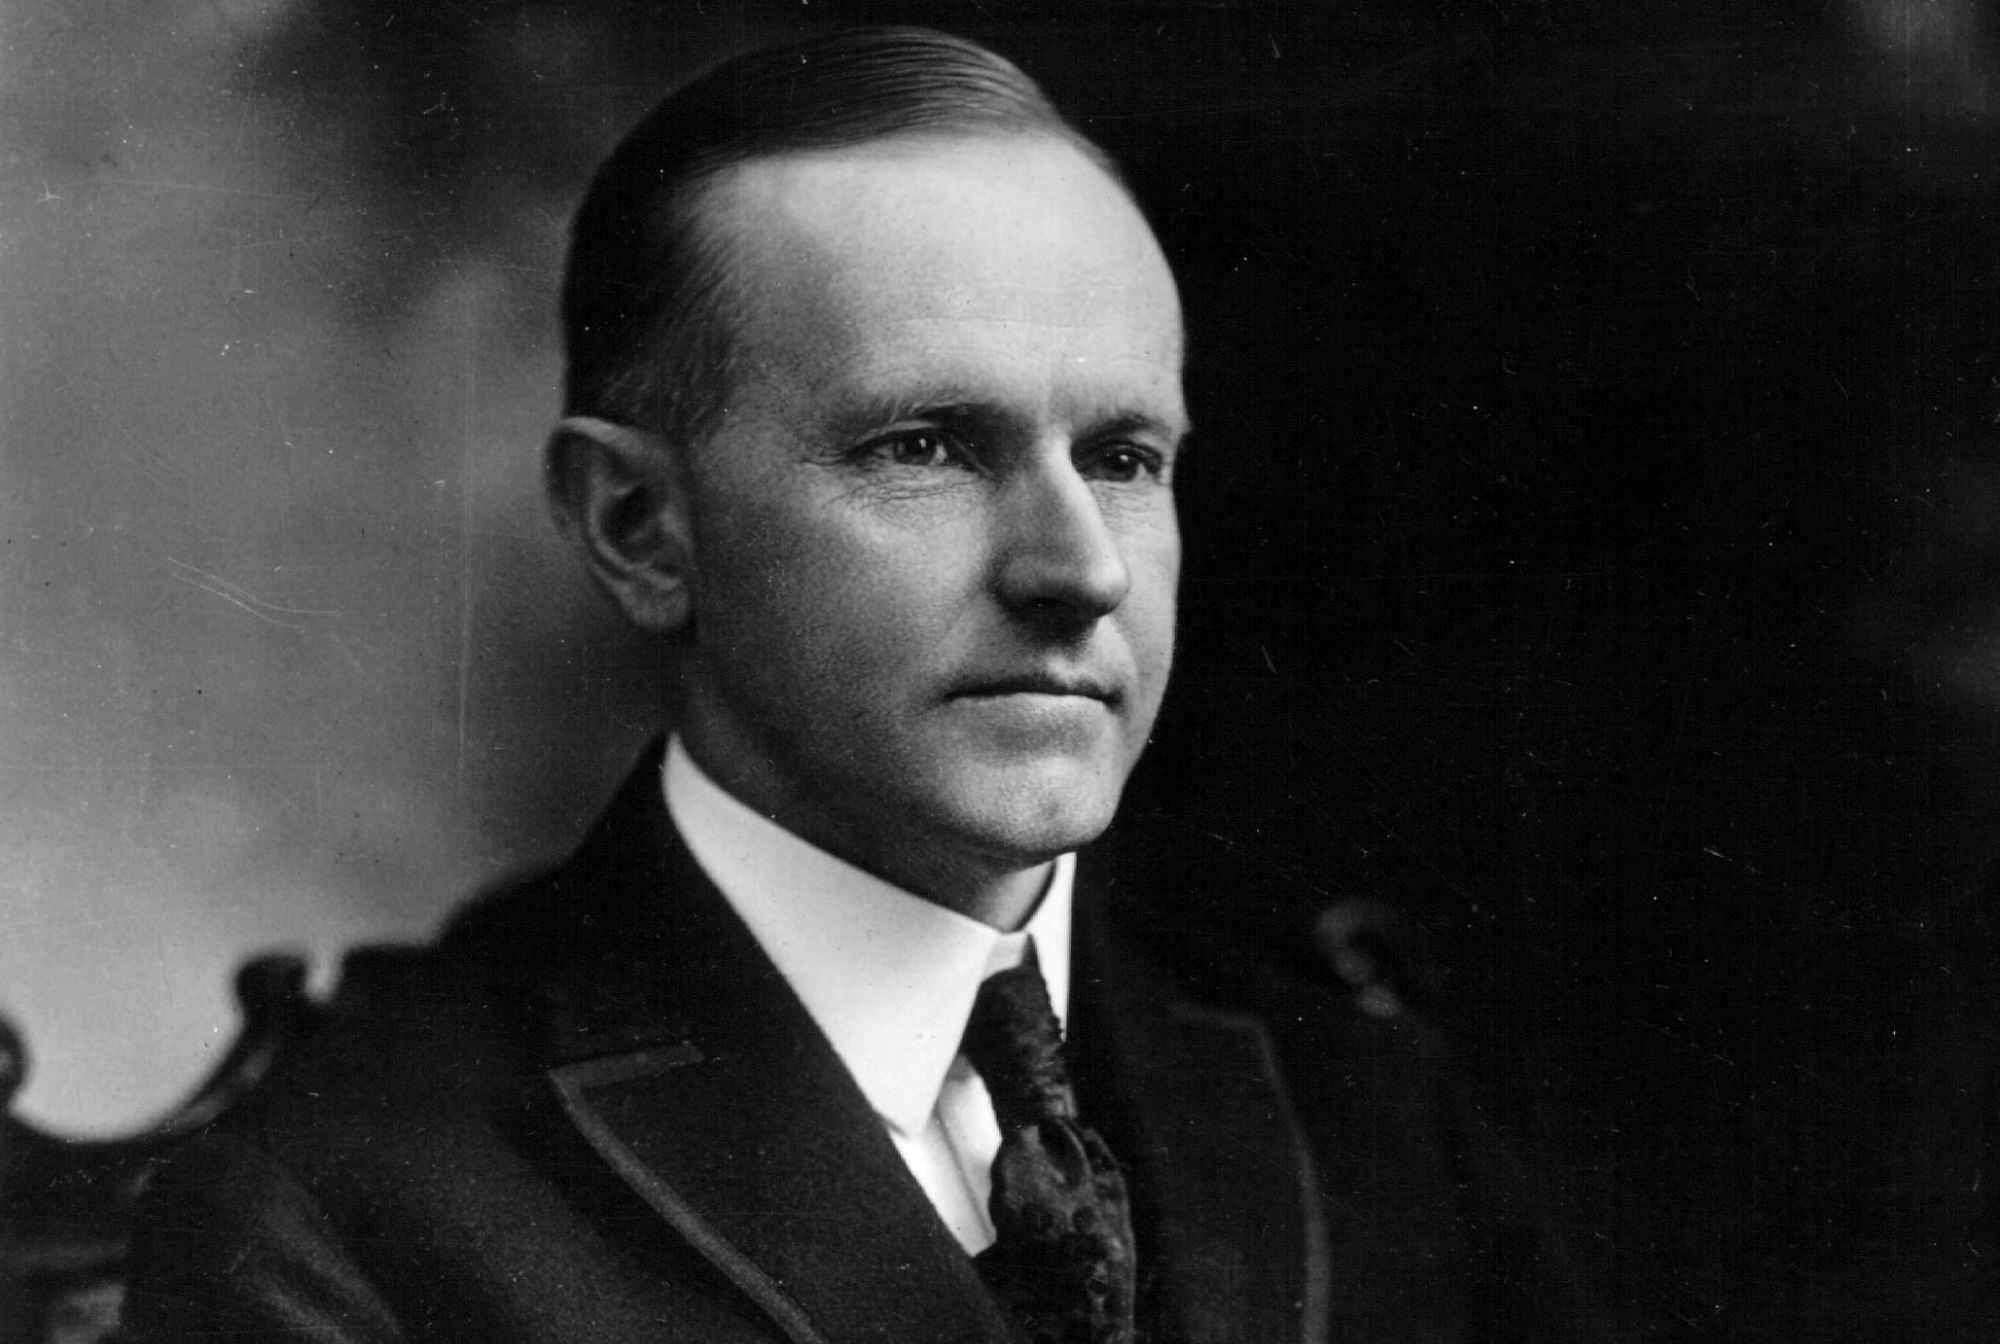 0e0c9f6c138c 10 Things You Might Not Know About Calvin Coolidge | Mental Floss